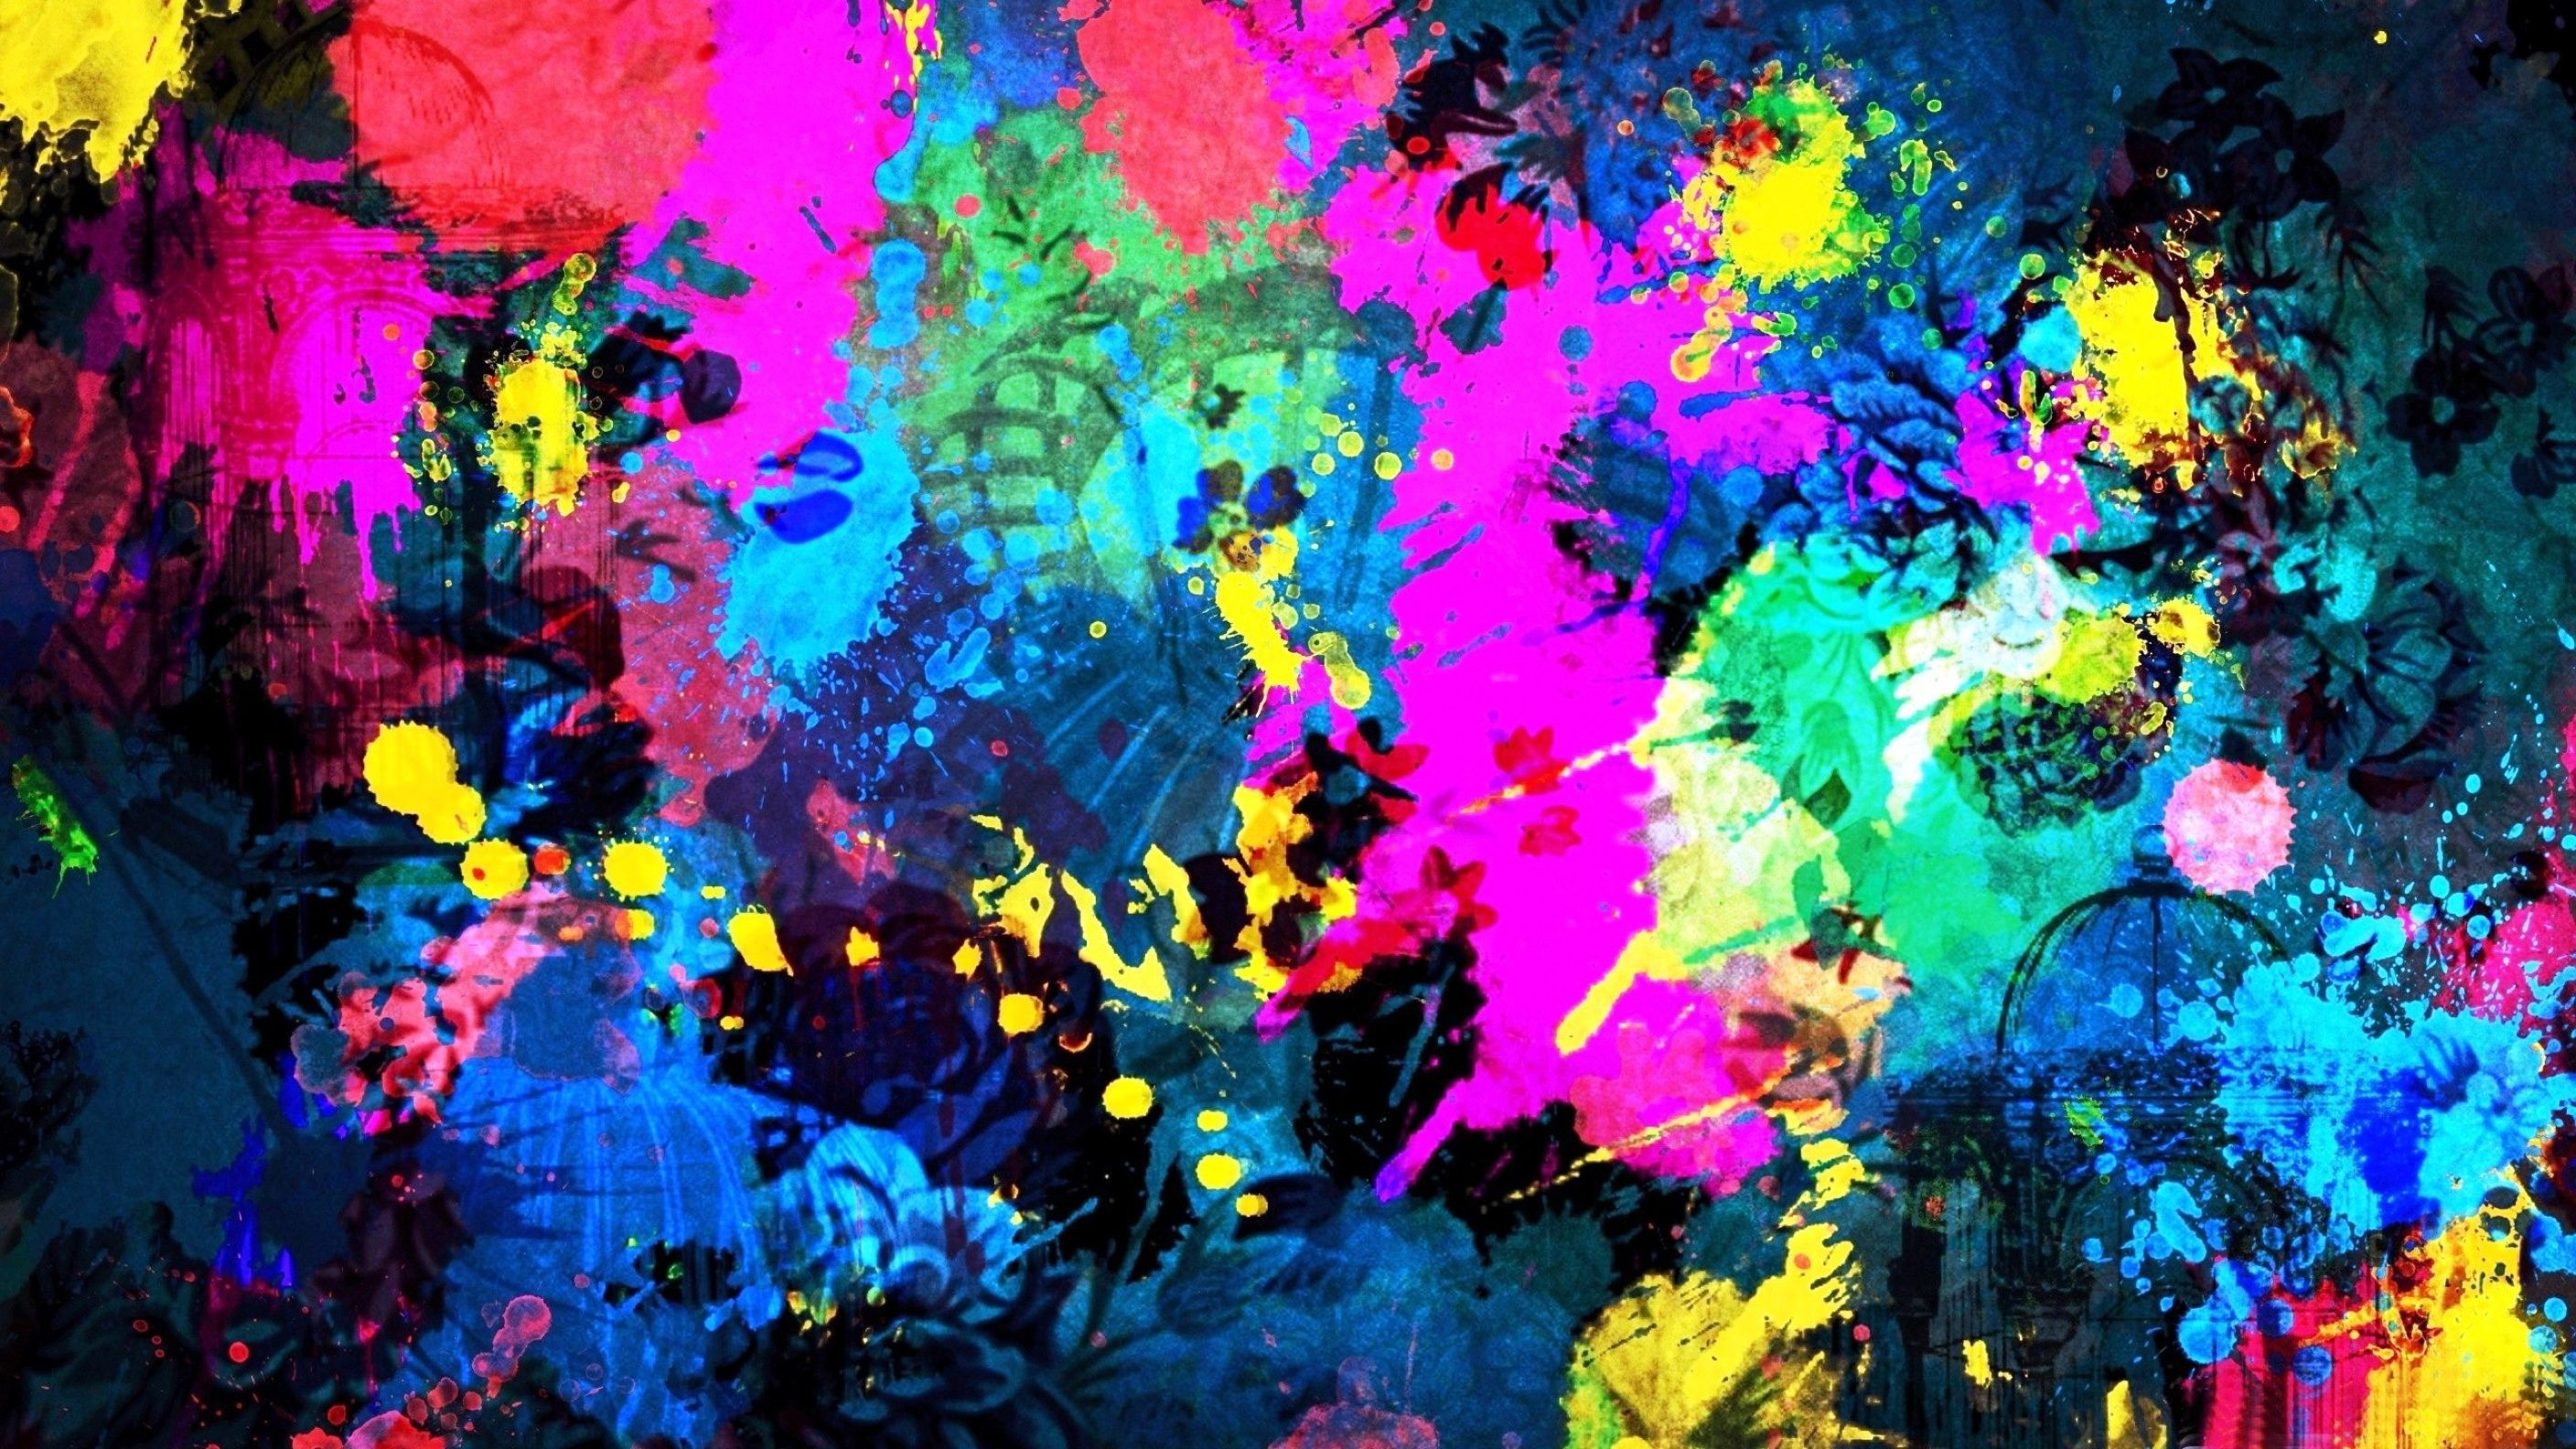 Cool wallpapers backgrounds 58 images 2816x1584 cool abstract hd wallpaper wallpapersafari abstract wallpapers hq 1680x1050 hd desktop wallpaper voltagebd Gallery